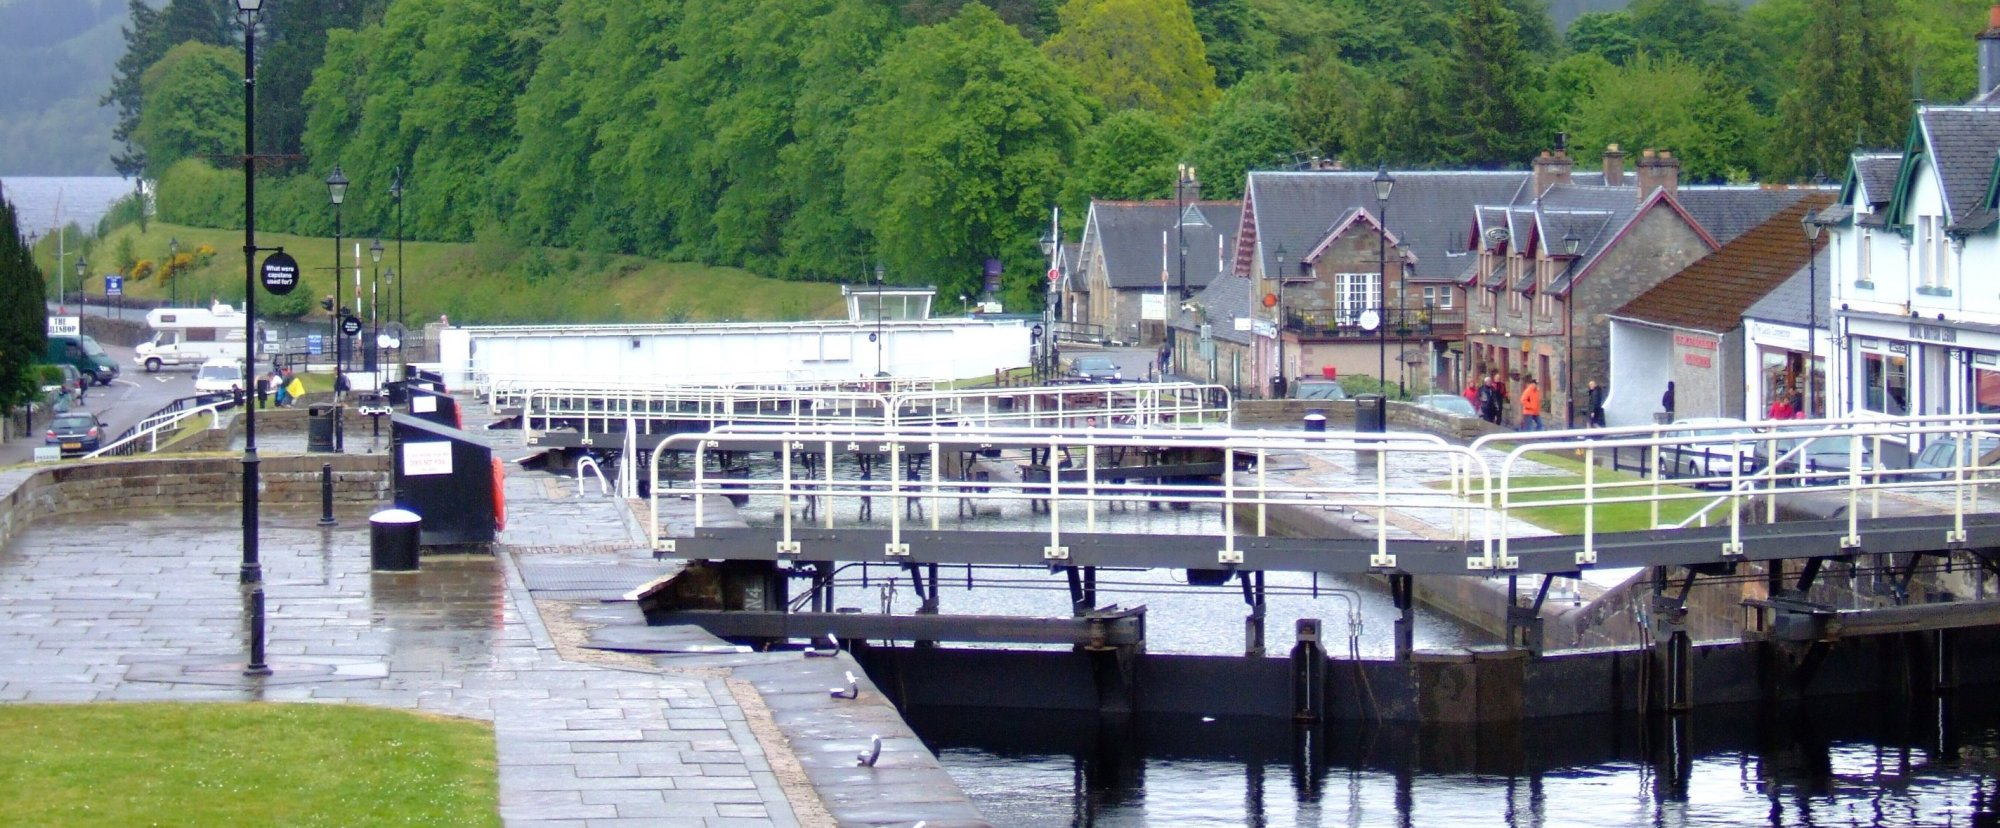 Arriving in Fort Augustus